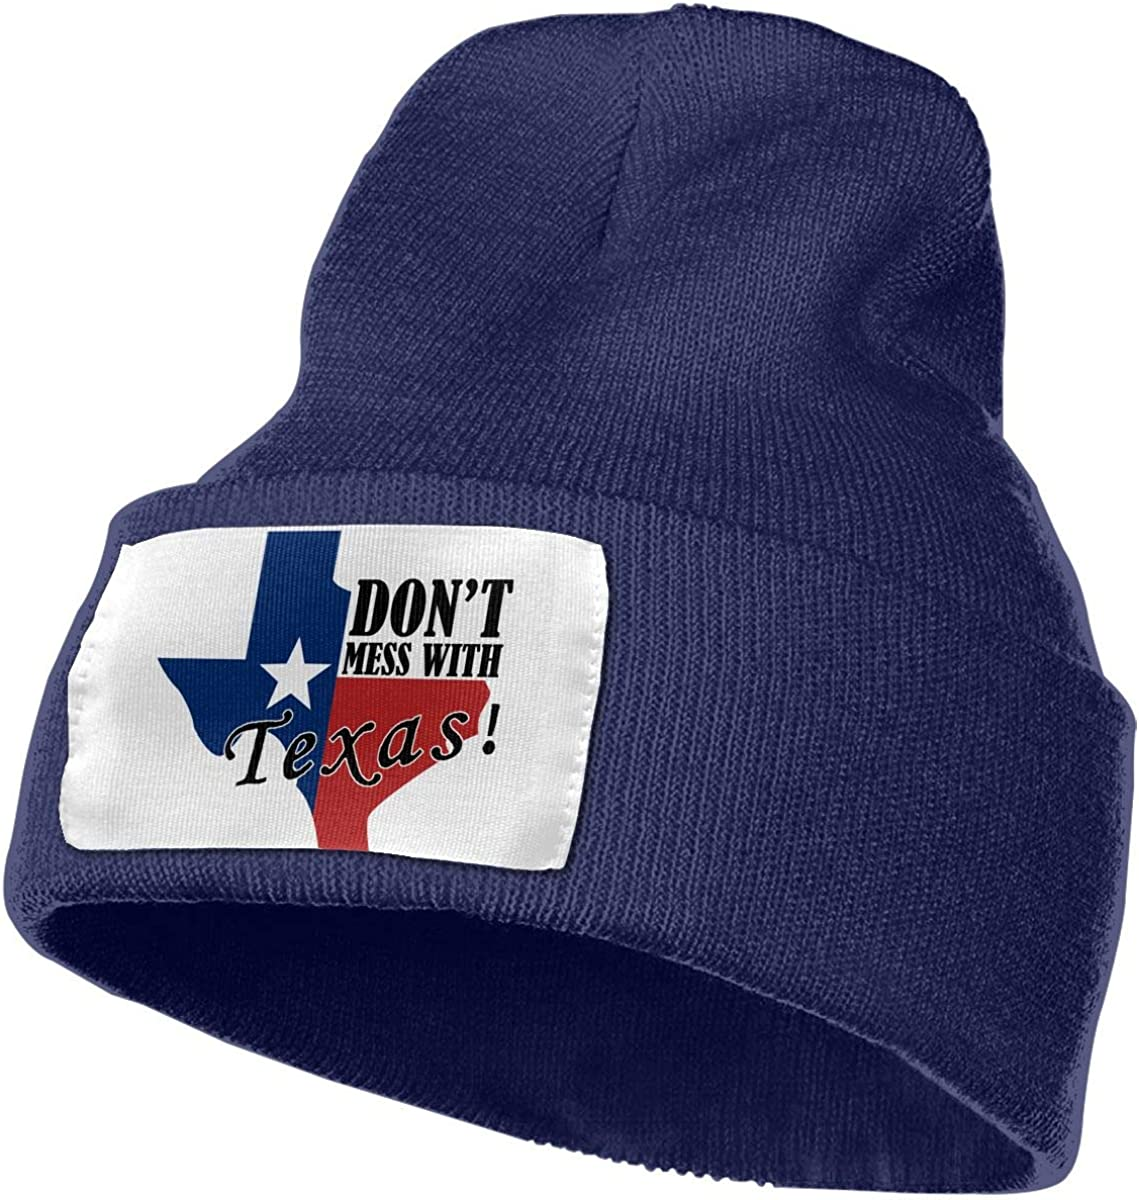 Dont Mess with Texas Unisex Winter Warm Skull Cap